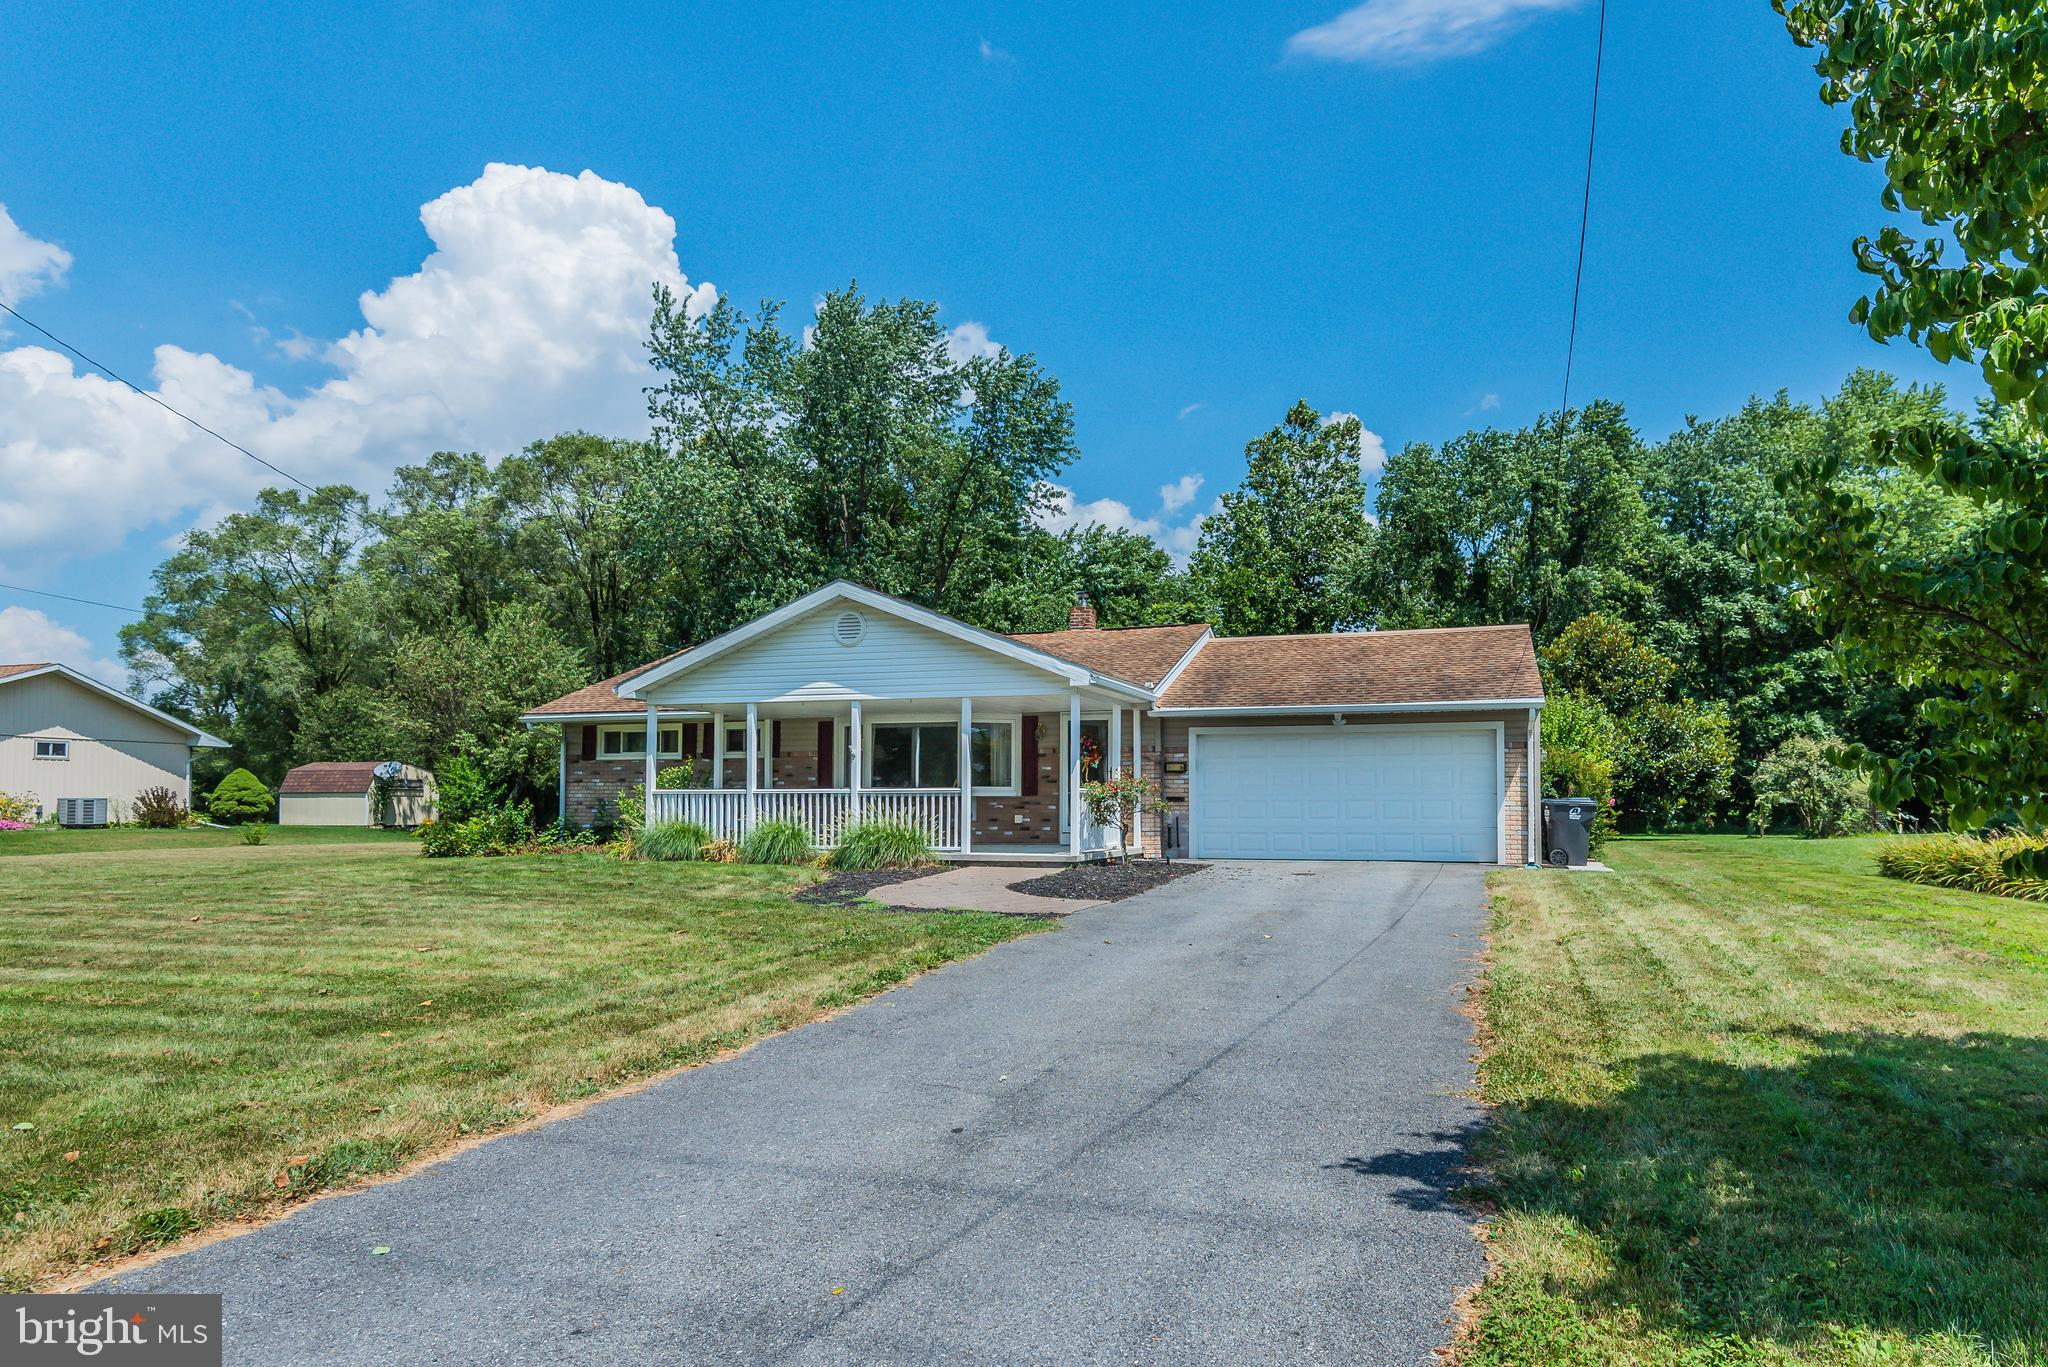 100 MCLAND ROAD, MOUNT HOLLY SPRINGS, PA 17065